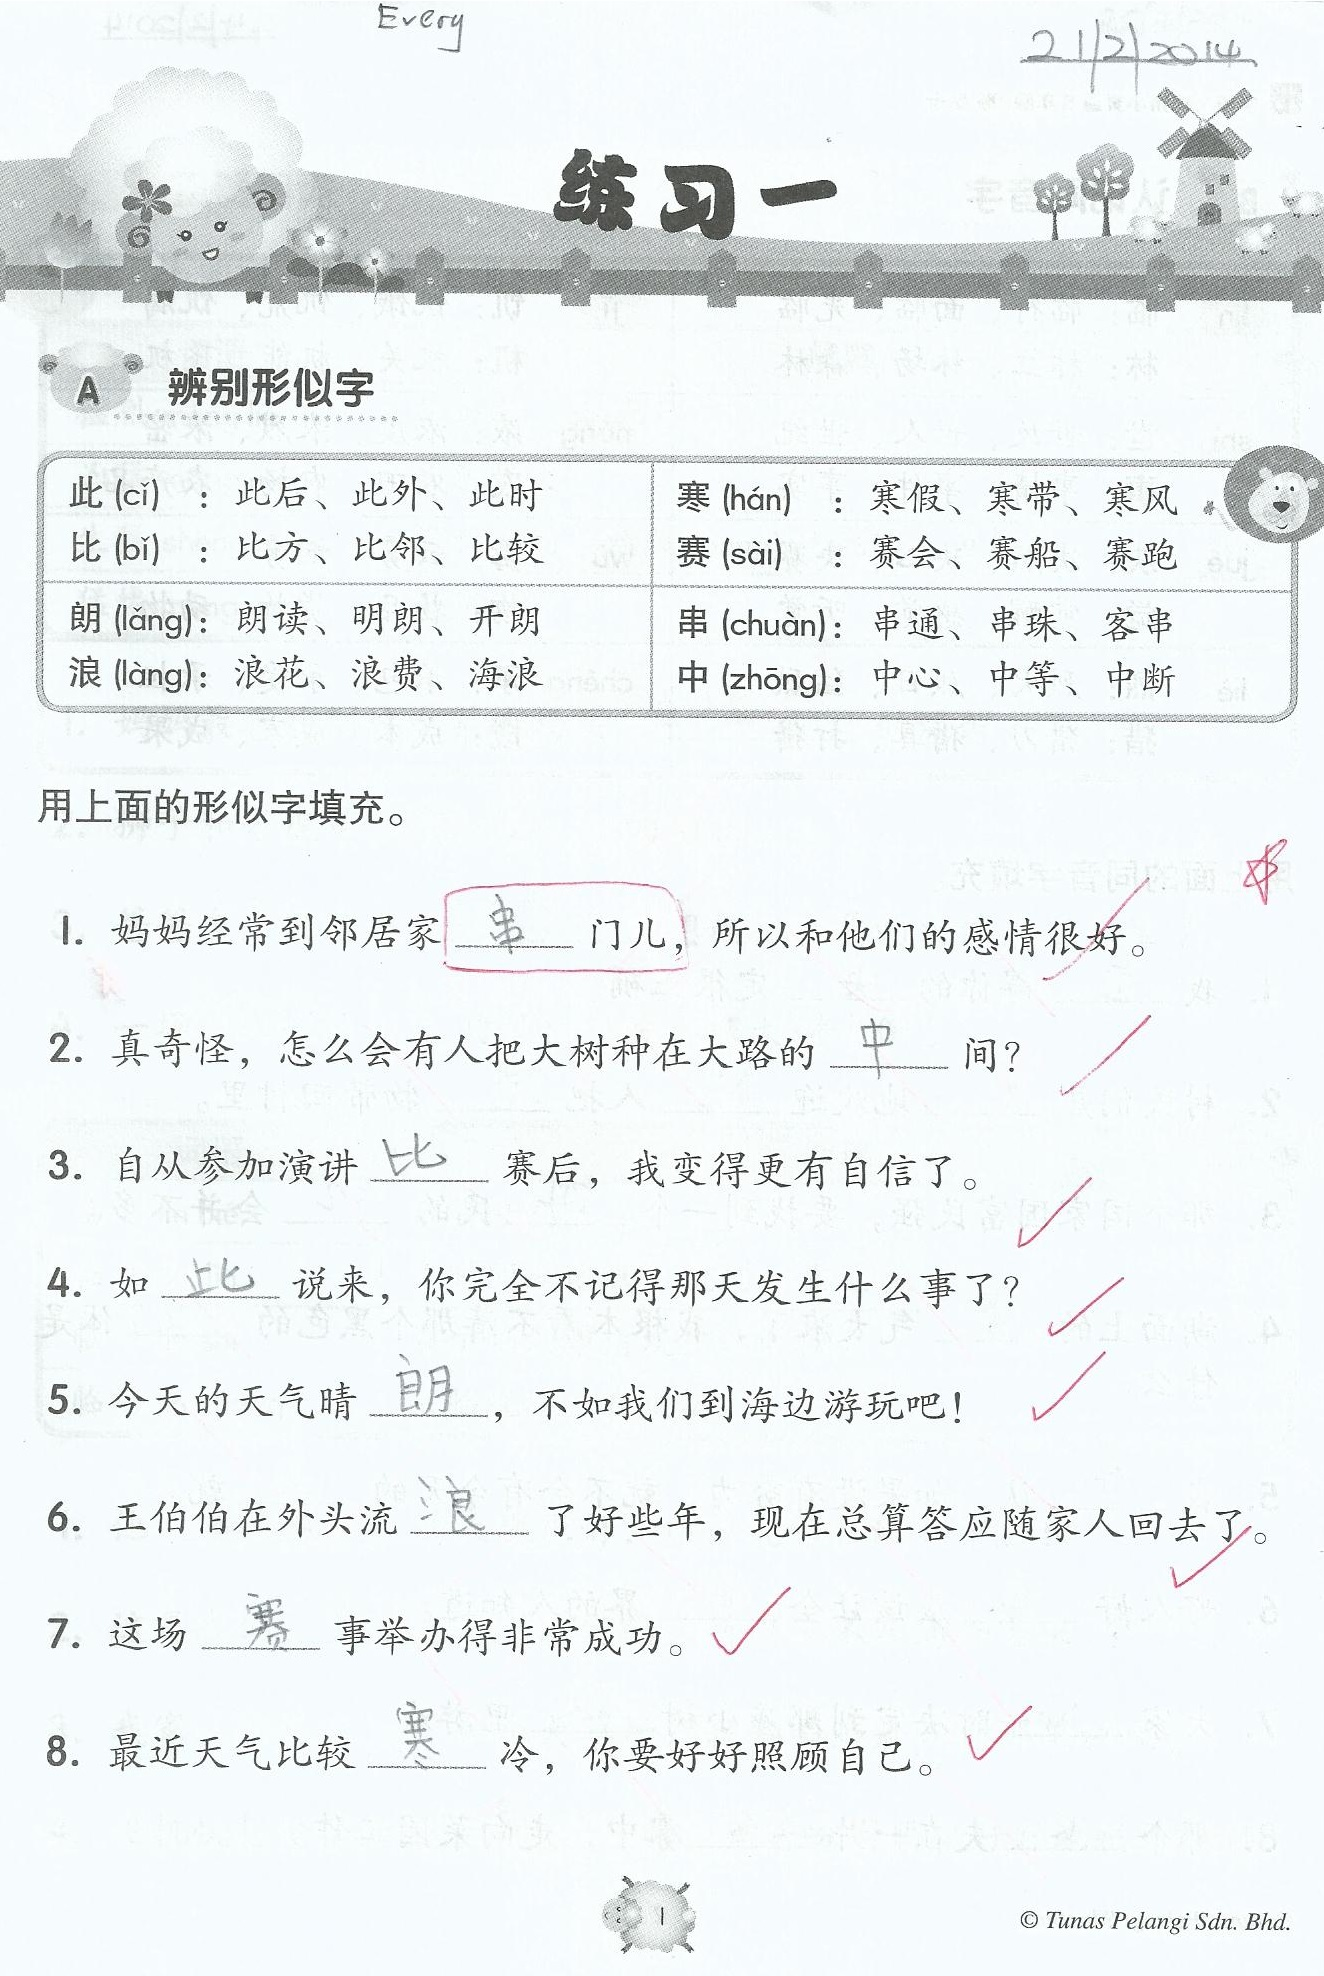 Worksheets Enopi Worksheets chinese life long sharing page 15 zibian0002